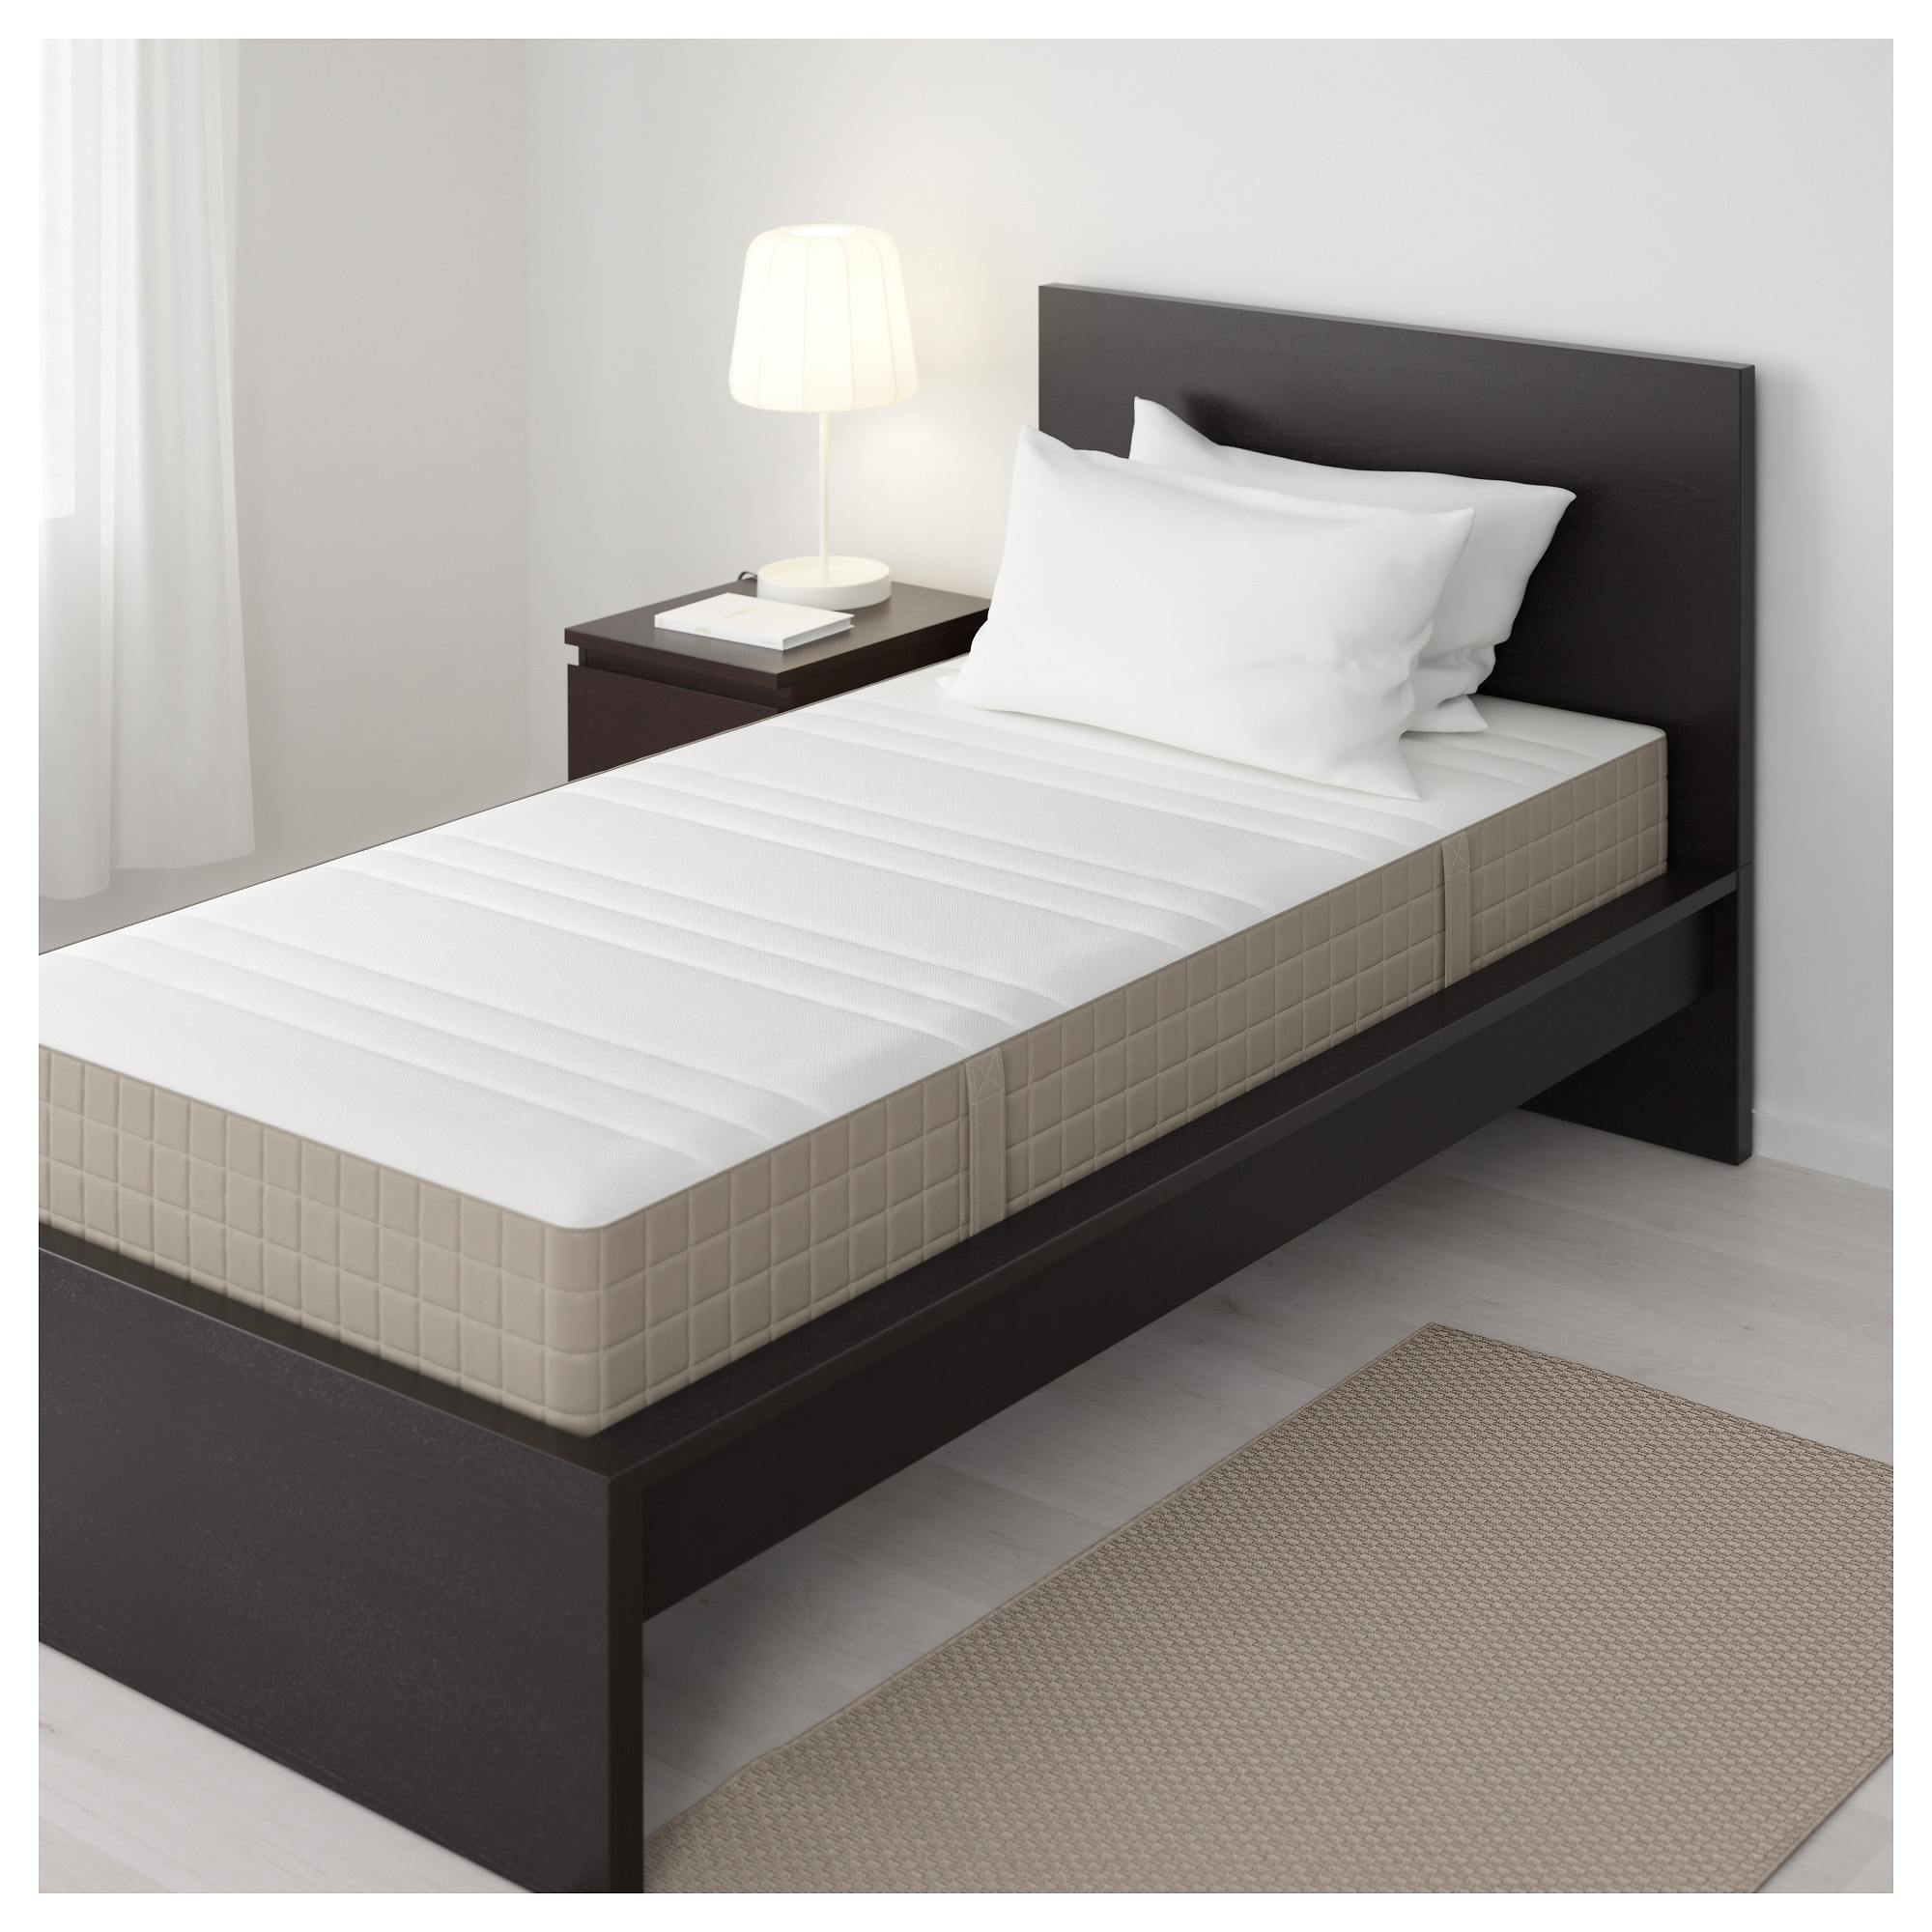 belle my matelas avis id es de bain de soleil. Black Bedroom Furniture Sets. Home Design Ideas